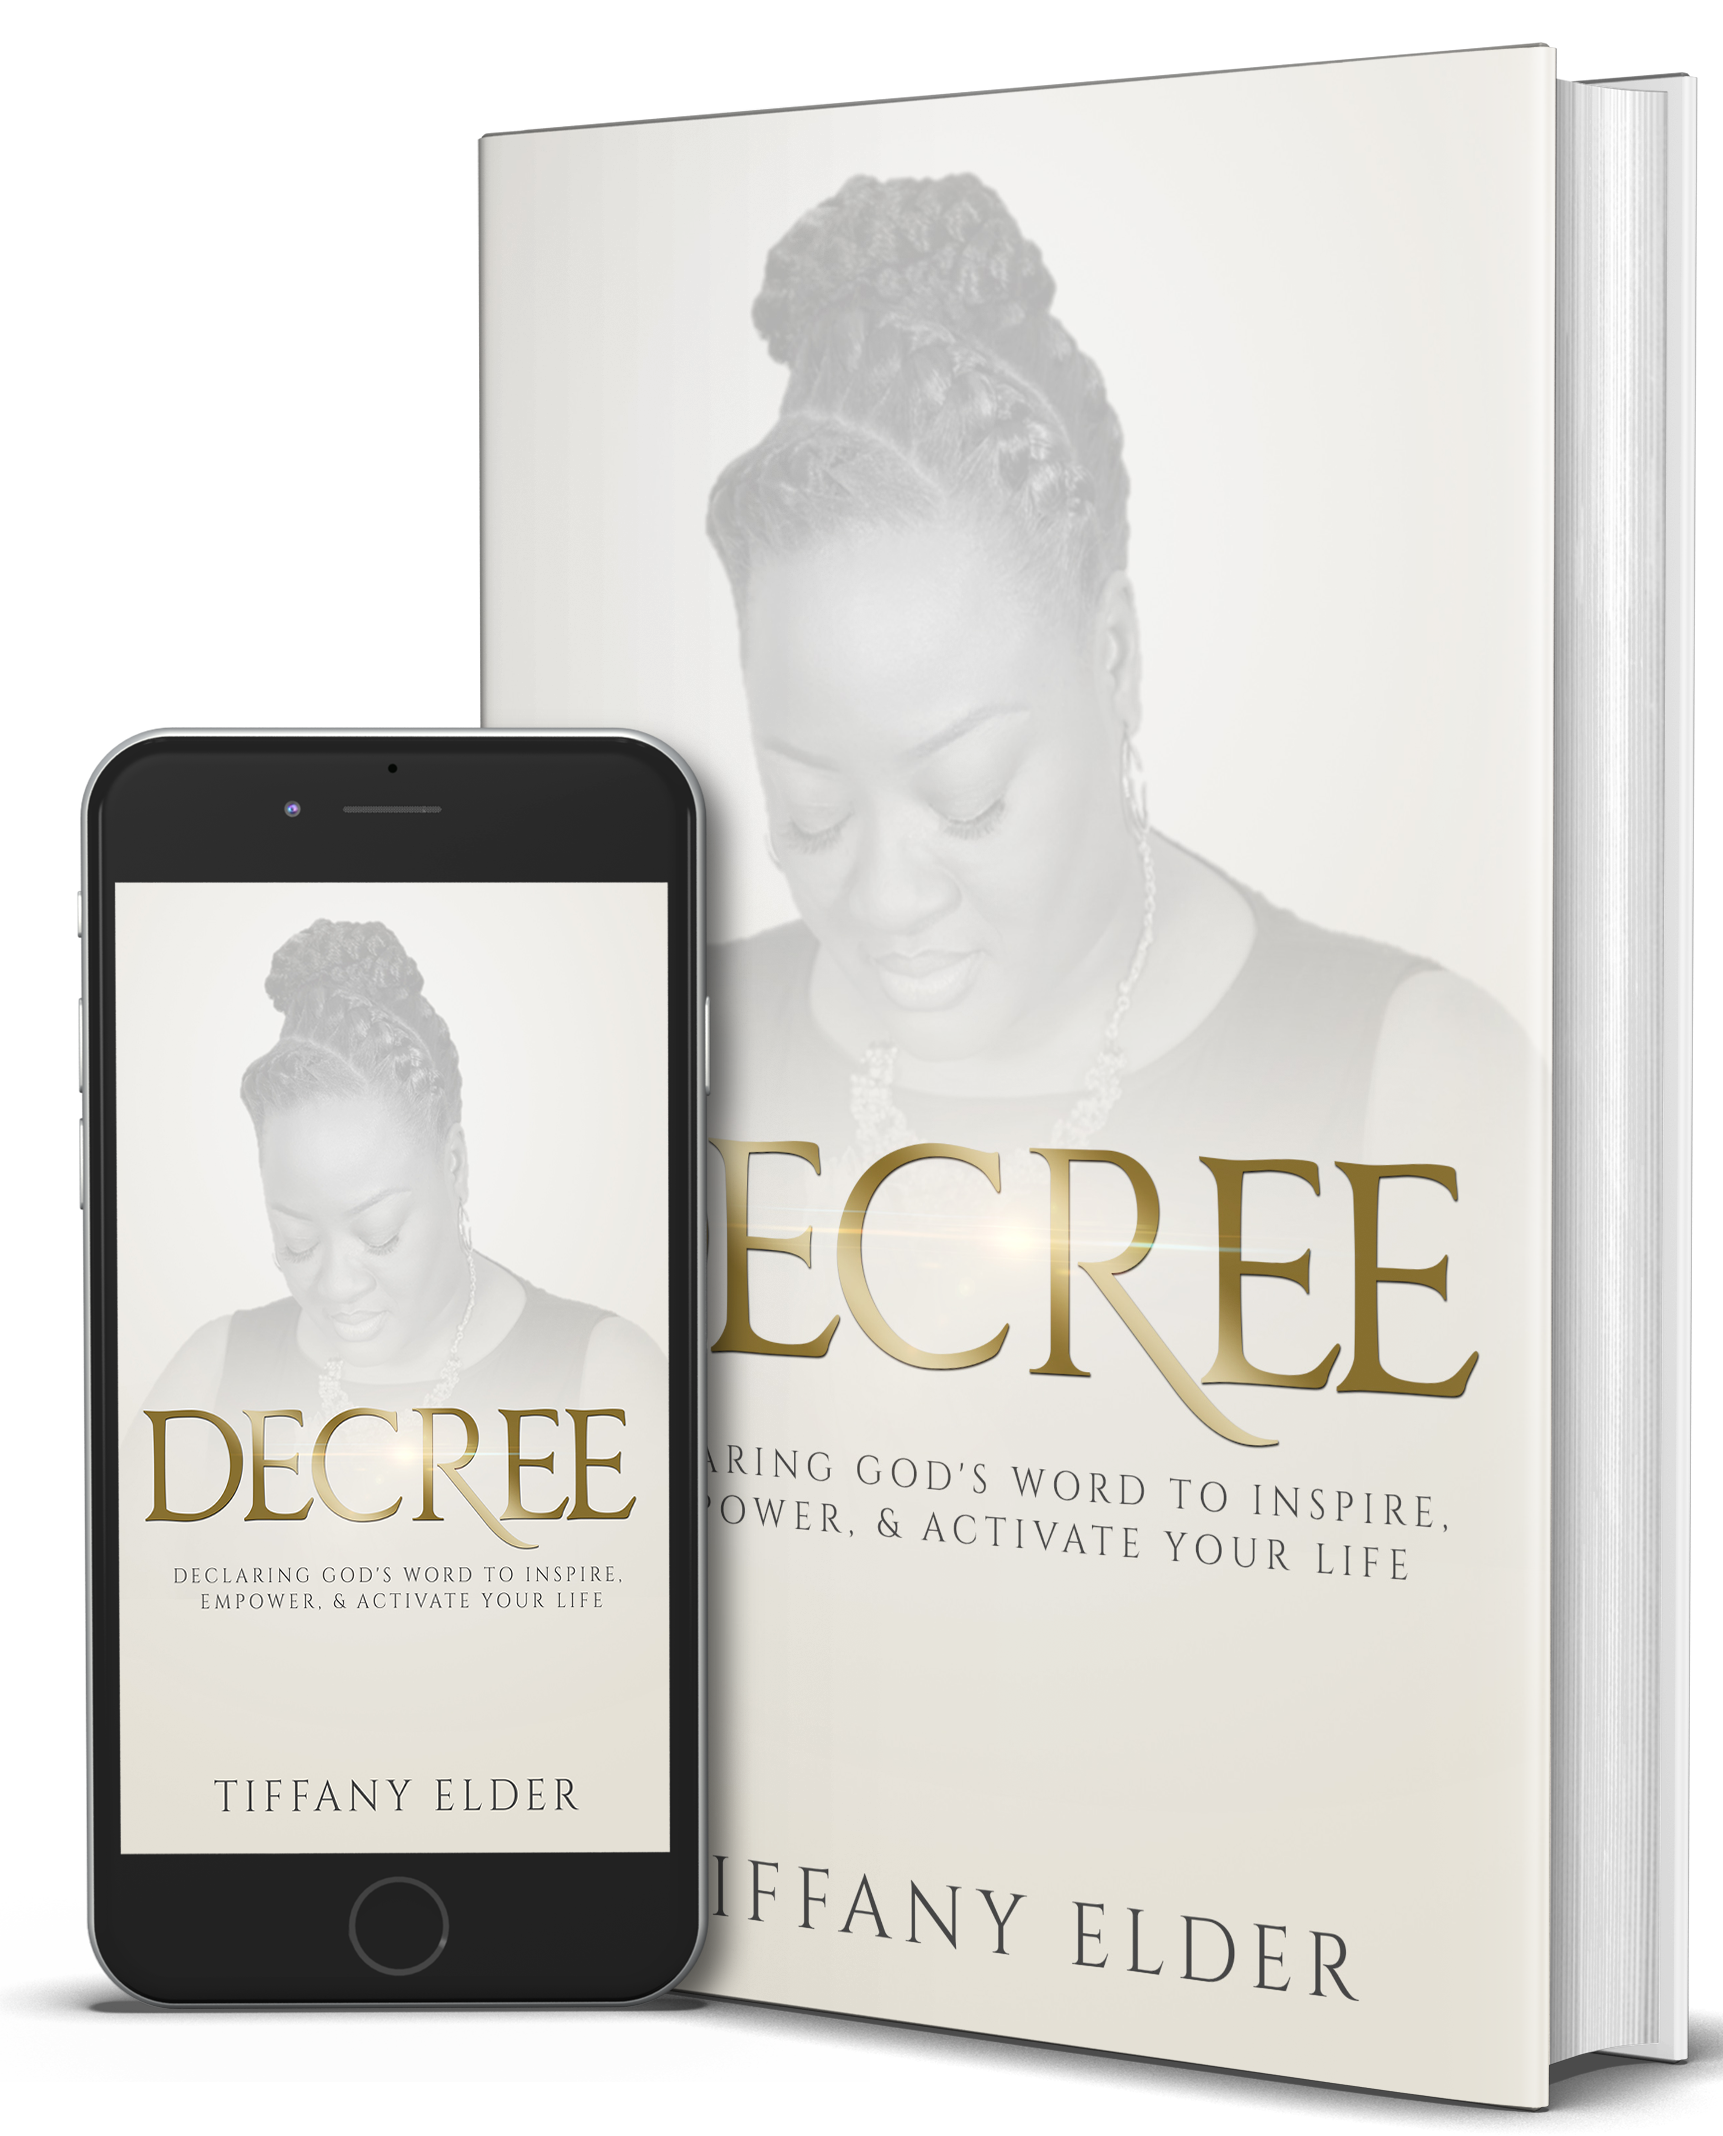 DECREE - Declaring God's Word to Inspire, Empower & Activate your Life